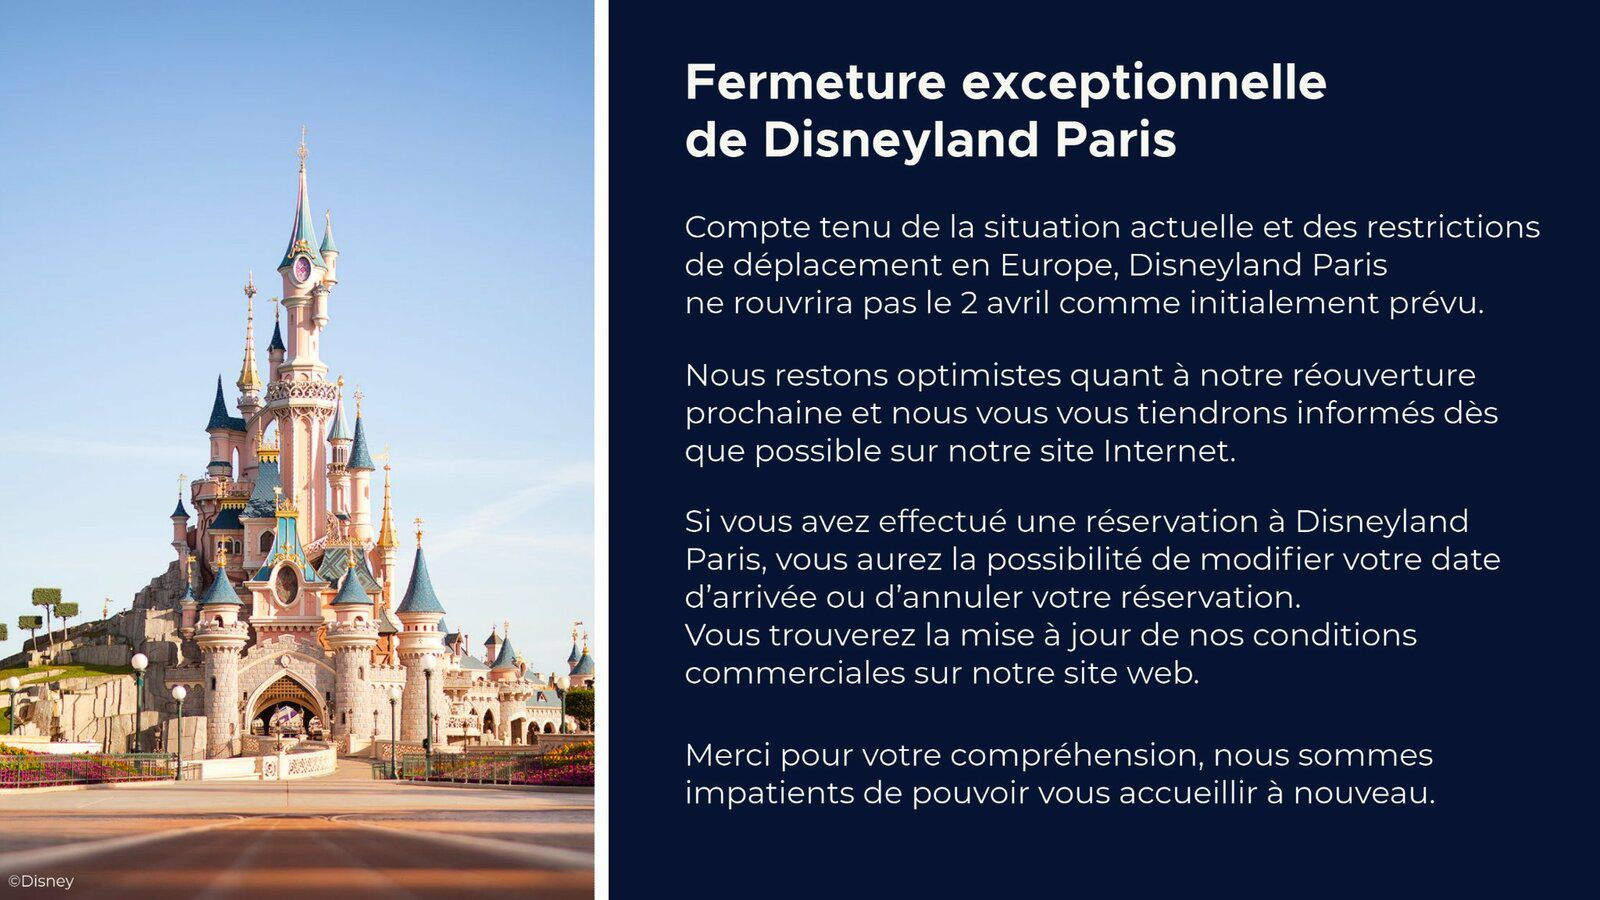 © Disneyland Paris